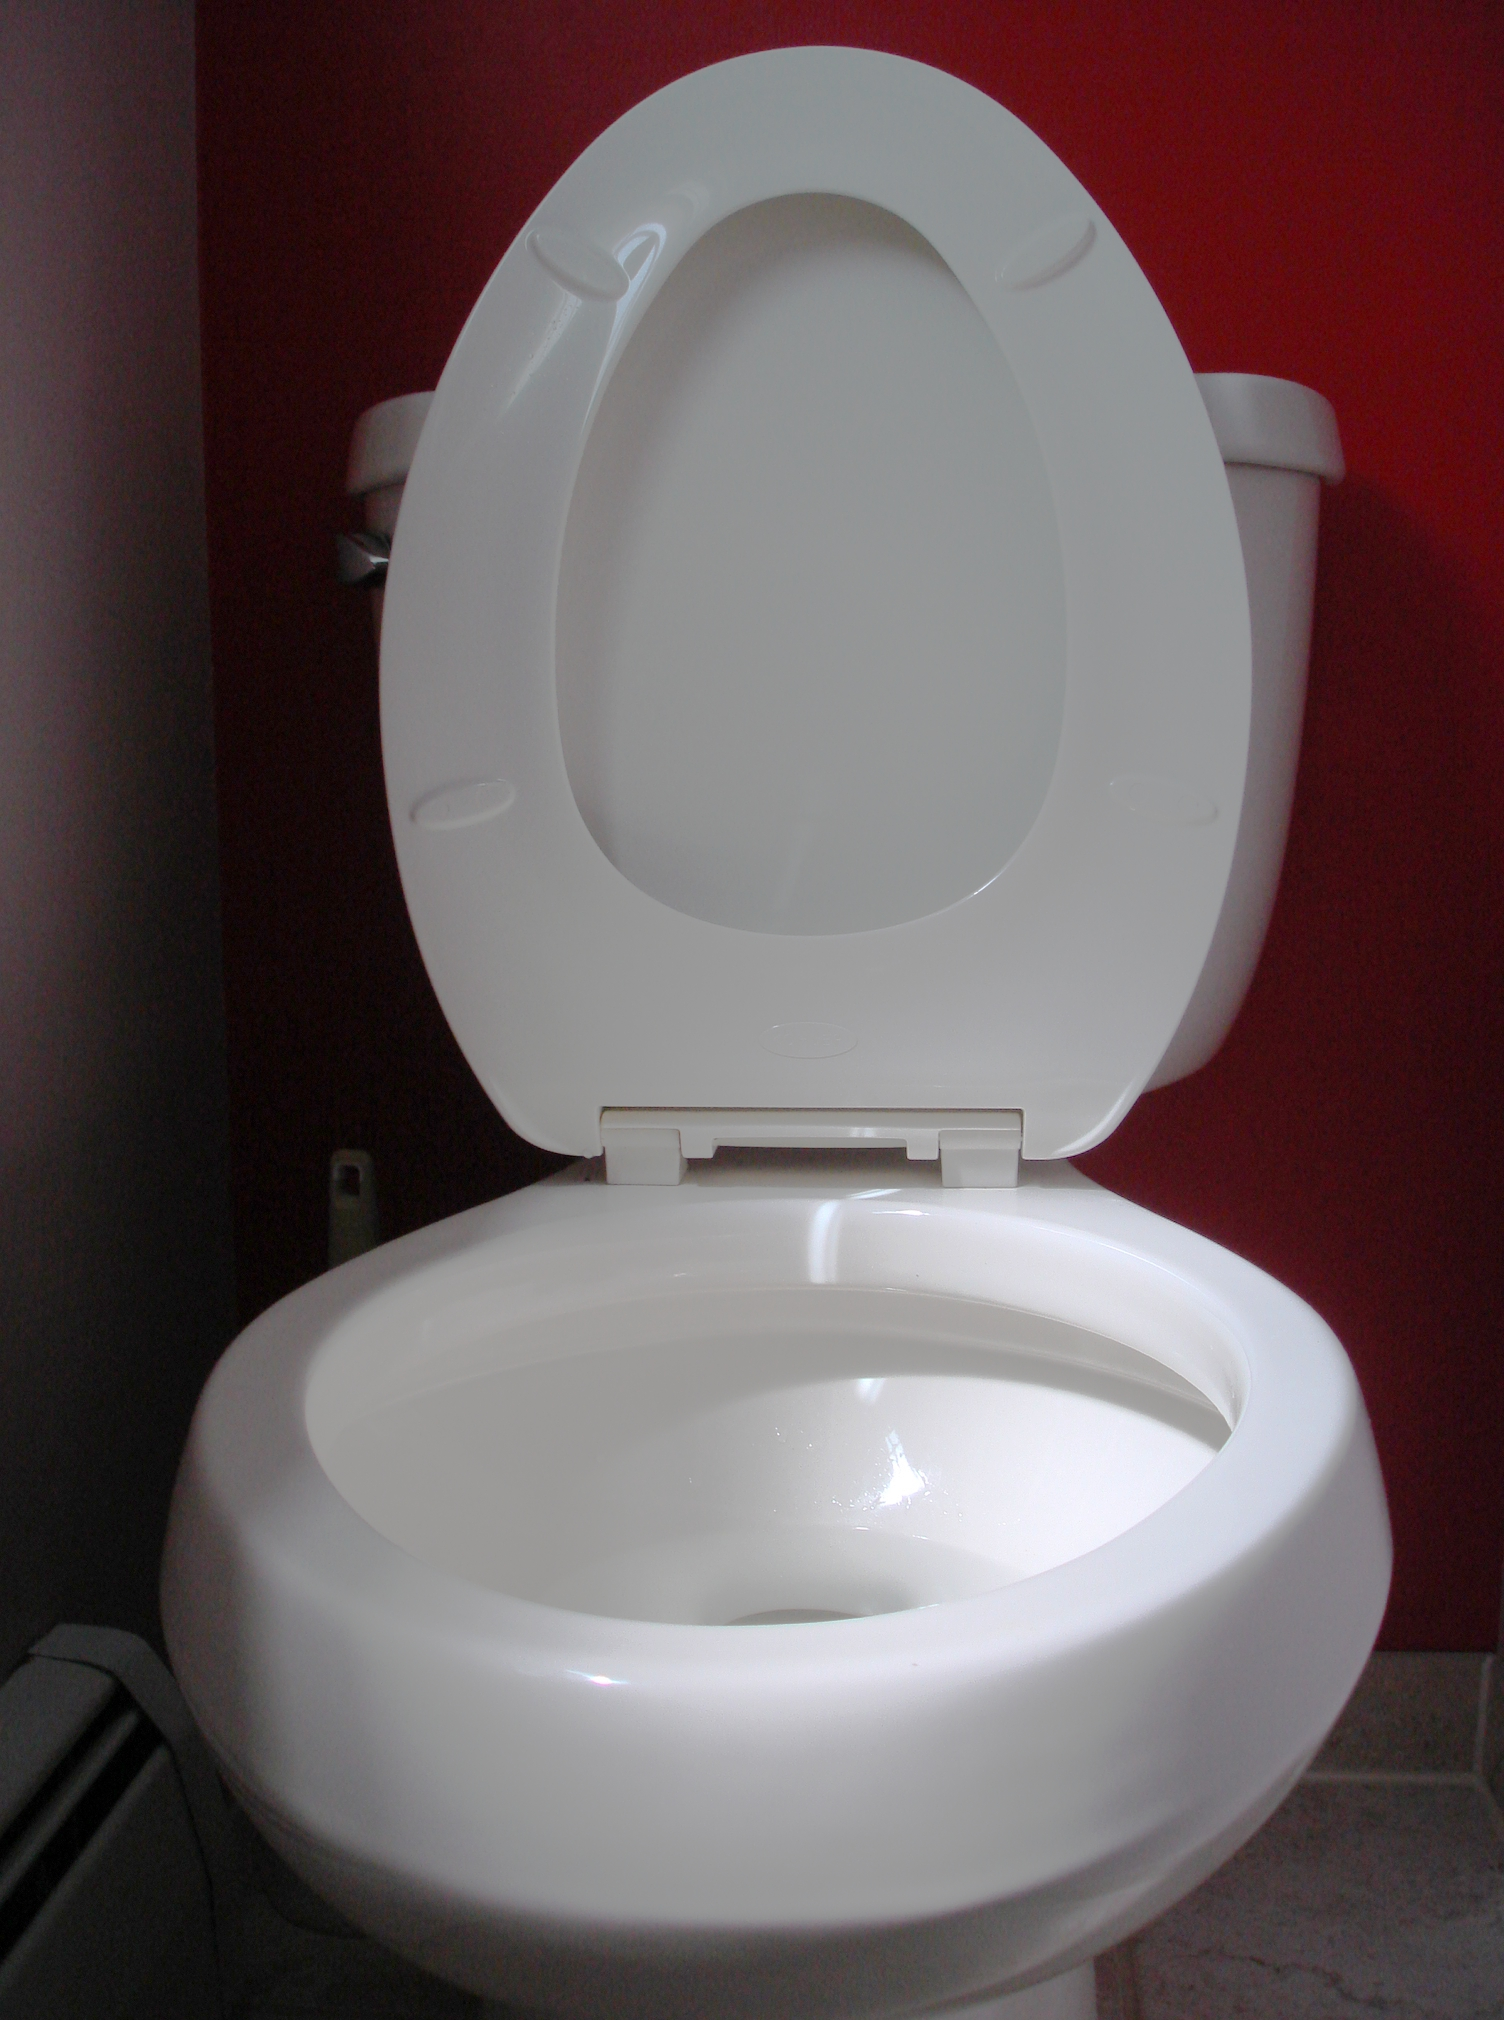 Toilet Seat In Pursuit Of Exito | Exito (nm) – Ek.si.to – Spanish Word